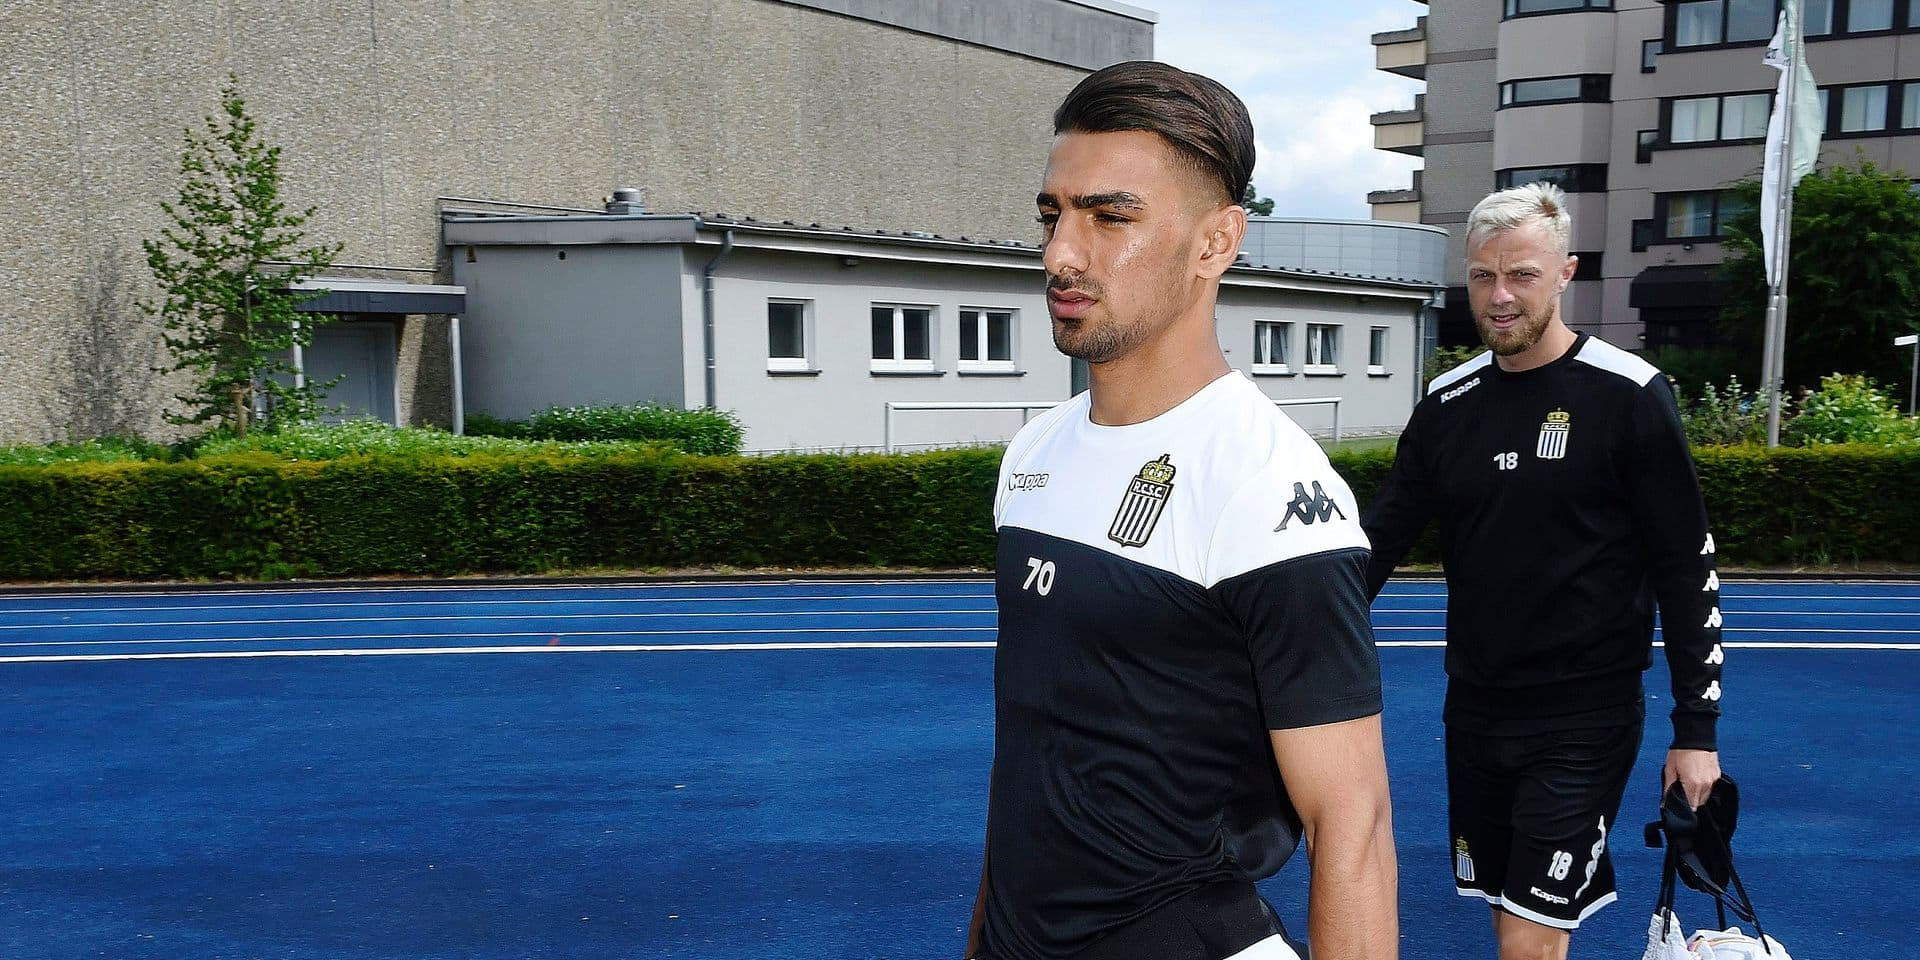 KAISERAU GERMANY- JULY 7 : Younes Delfi midfielder of Charleroi pictured during a pre-season training summer stage camp in Sporthotel in Kaiserau 07/07/2019 ( Photo by Philippe Crochet / Photonews